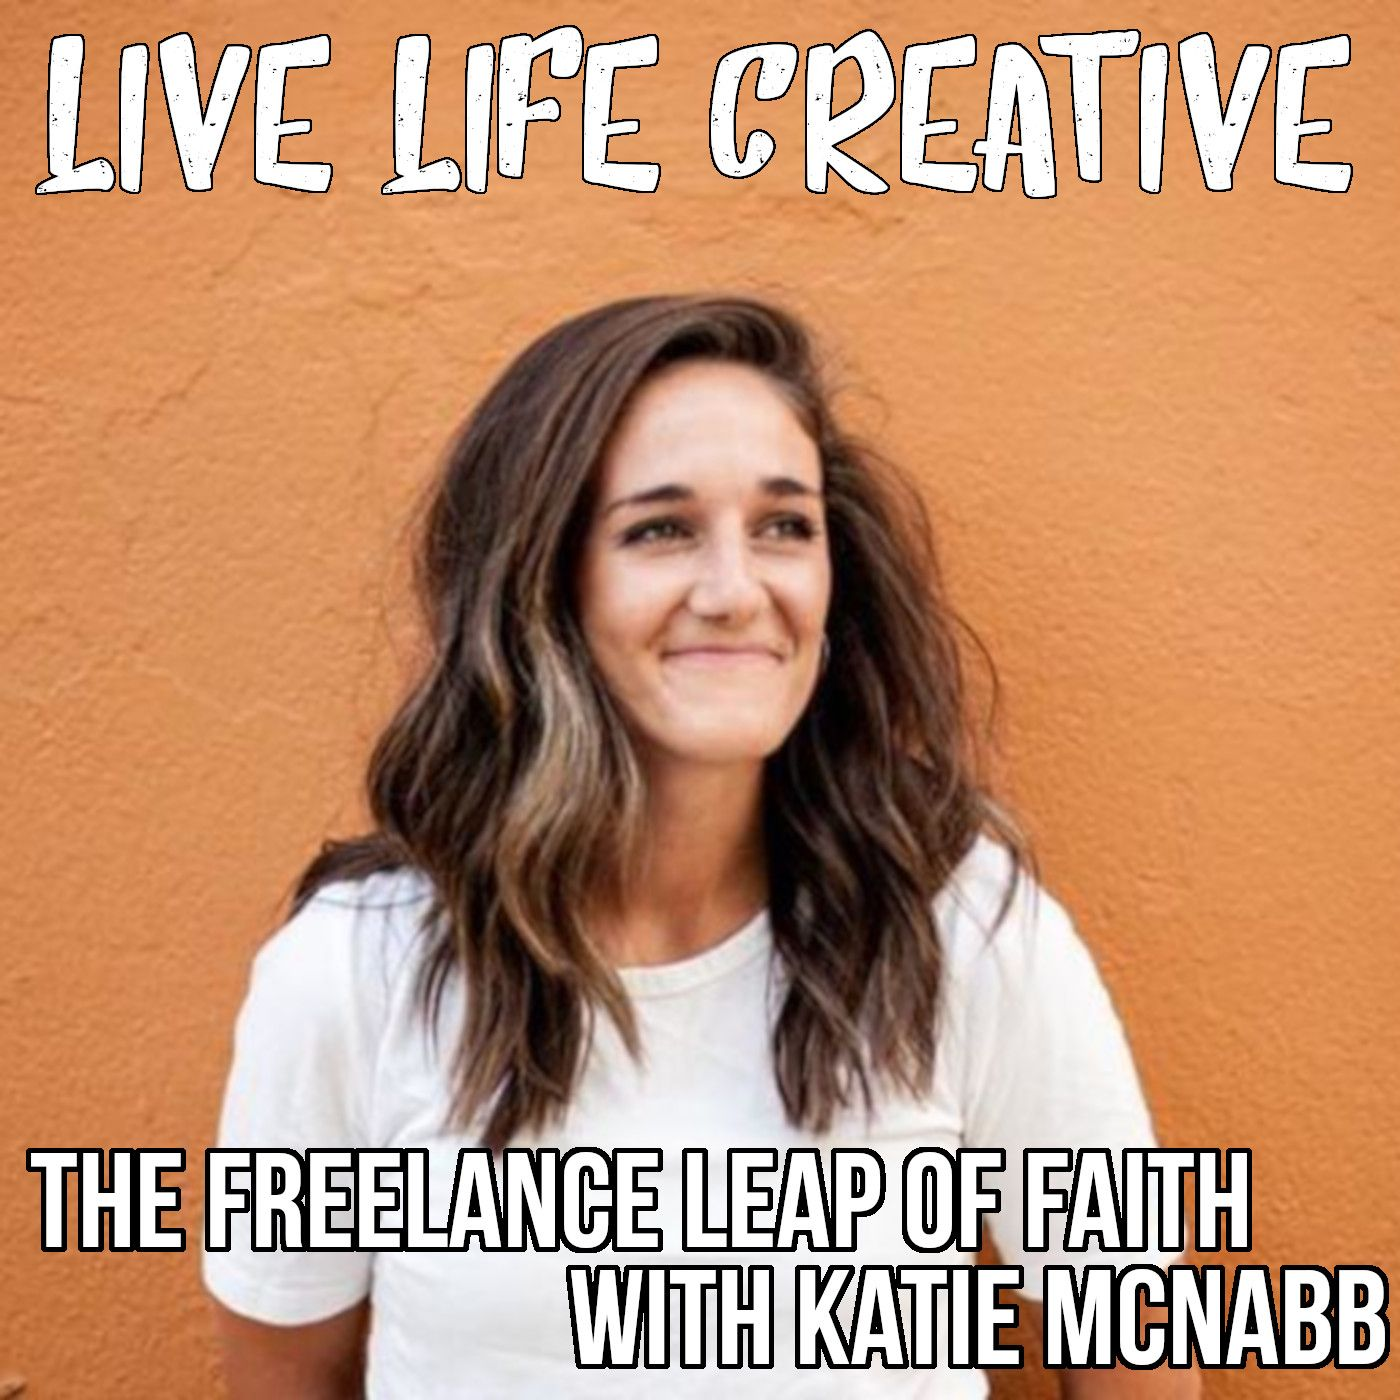 The Freelance Leap of Faith with Katie McNabb